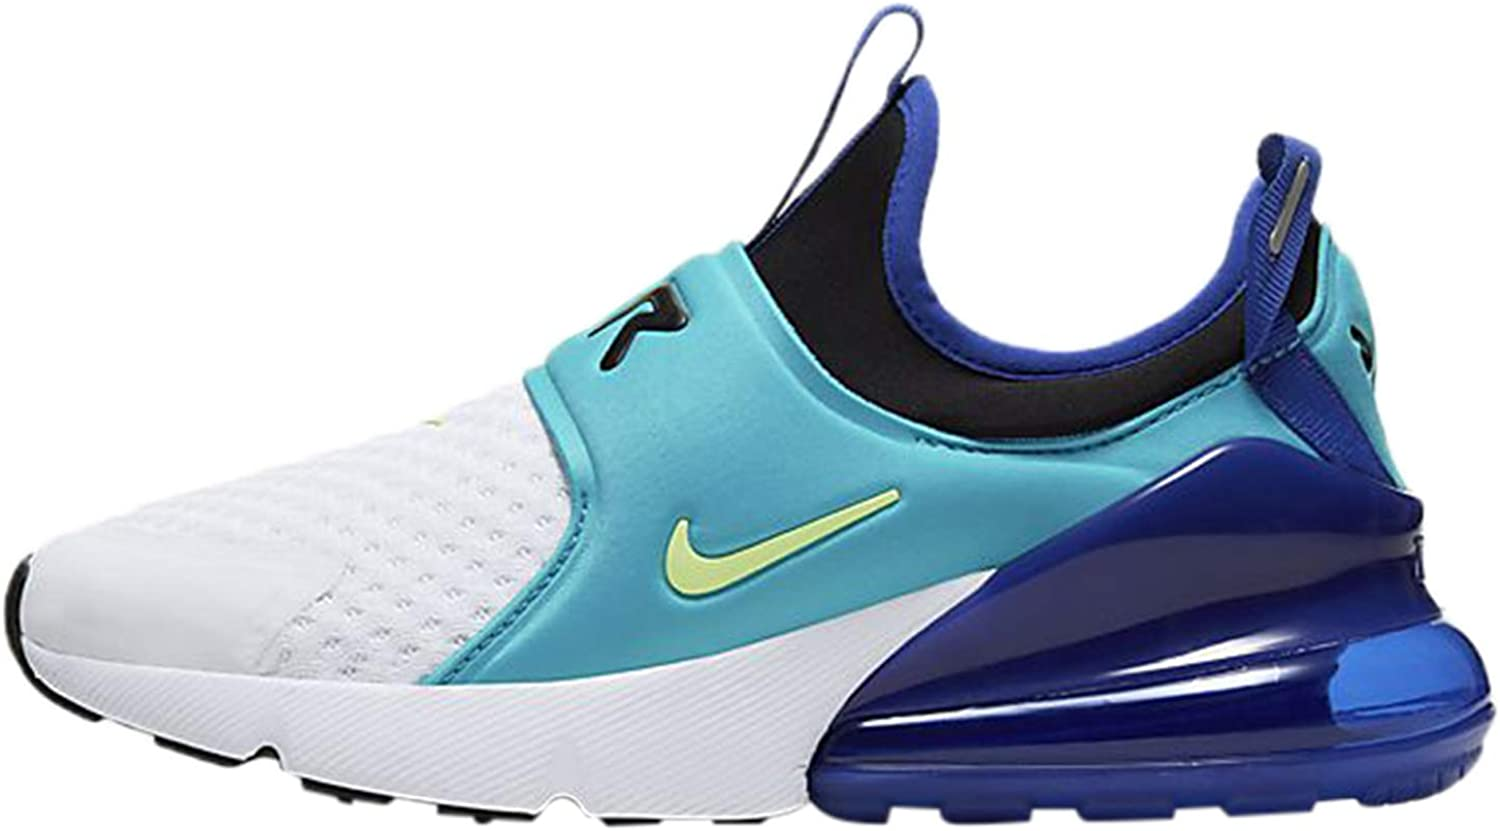 NIKE Air Max 270 Extreme (gs) Big Kids Running Casual Shoes Ci1108-101 Size 5